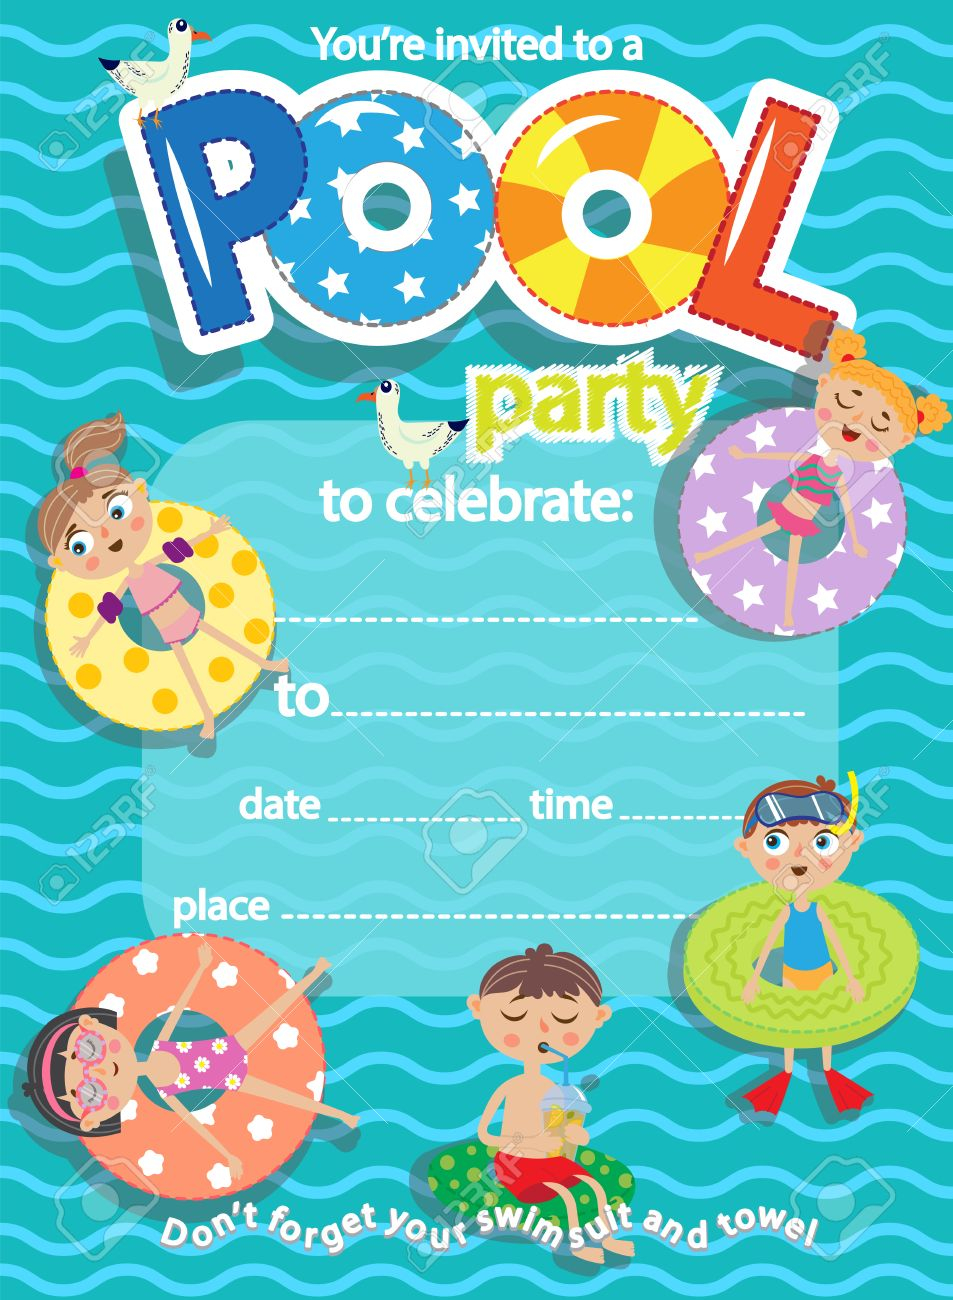 Pool Party Invitation Template Card Kids Fun In Pool Royalty Free for size 953 X 1300